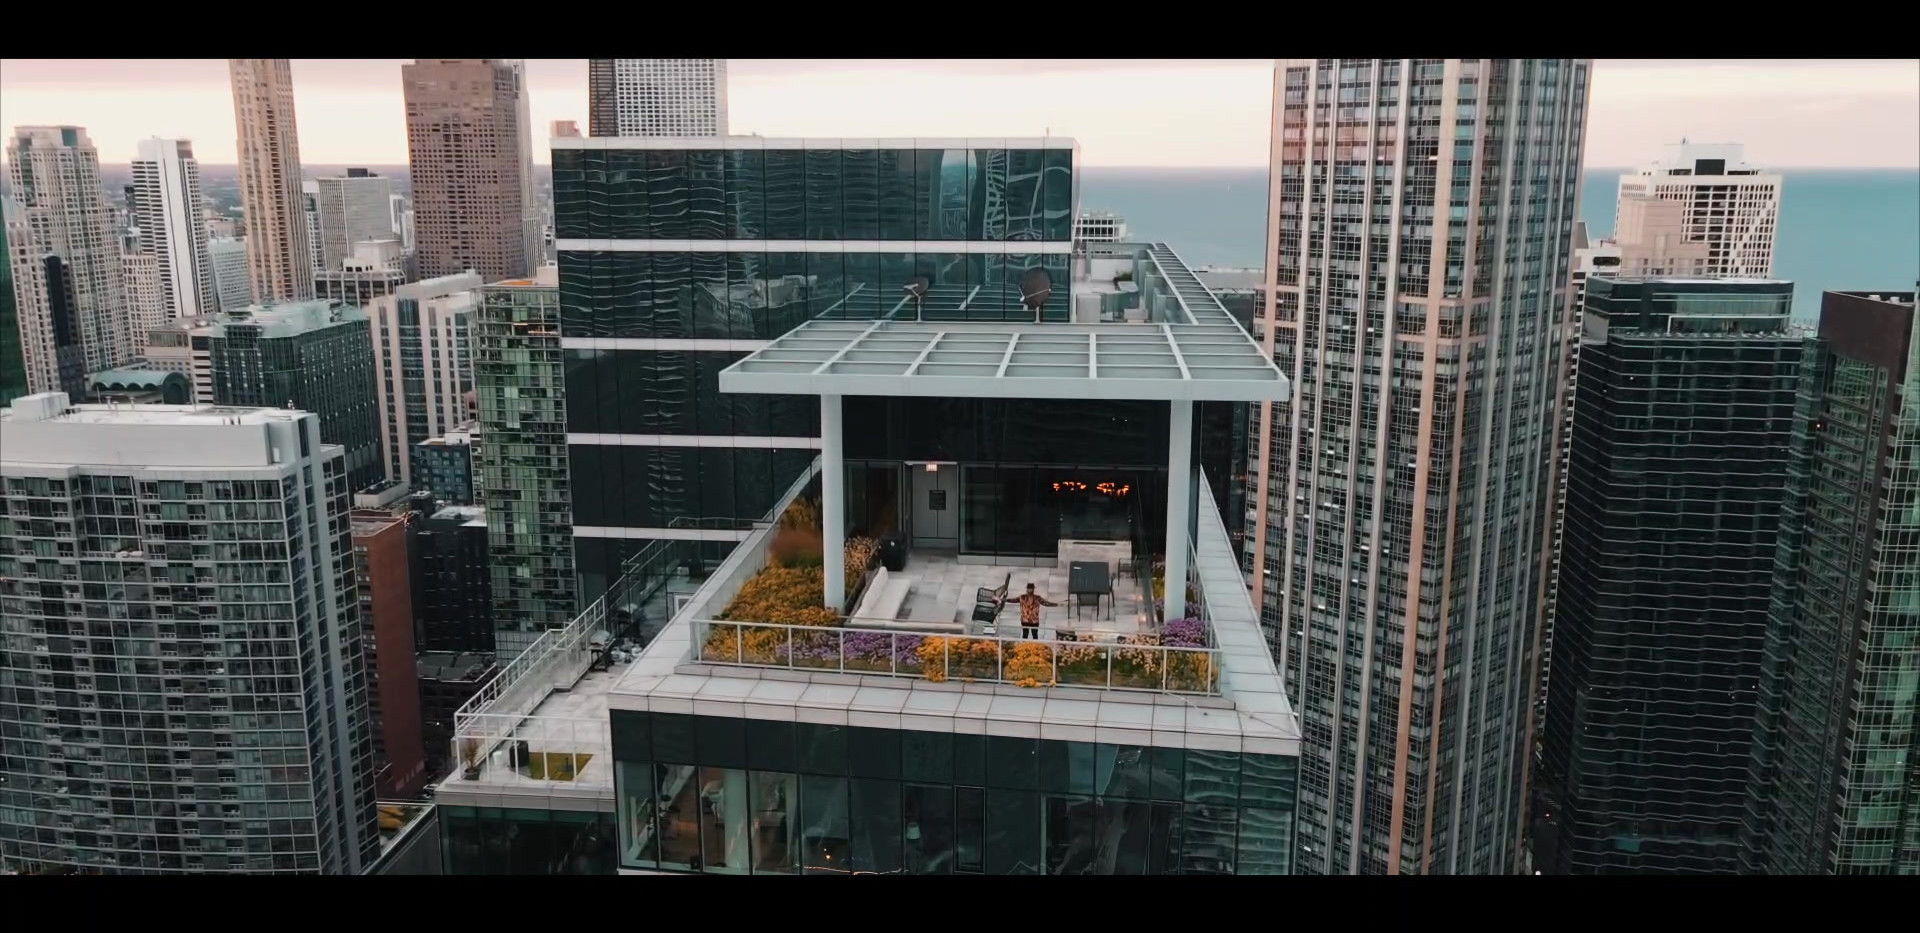 Downtown Chicago drone shot